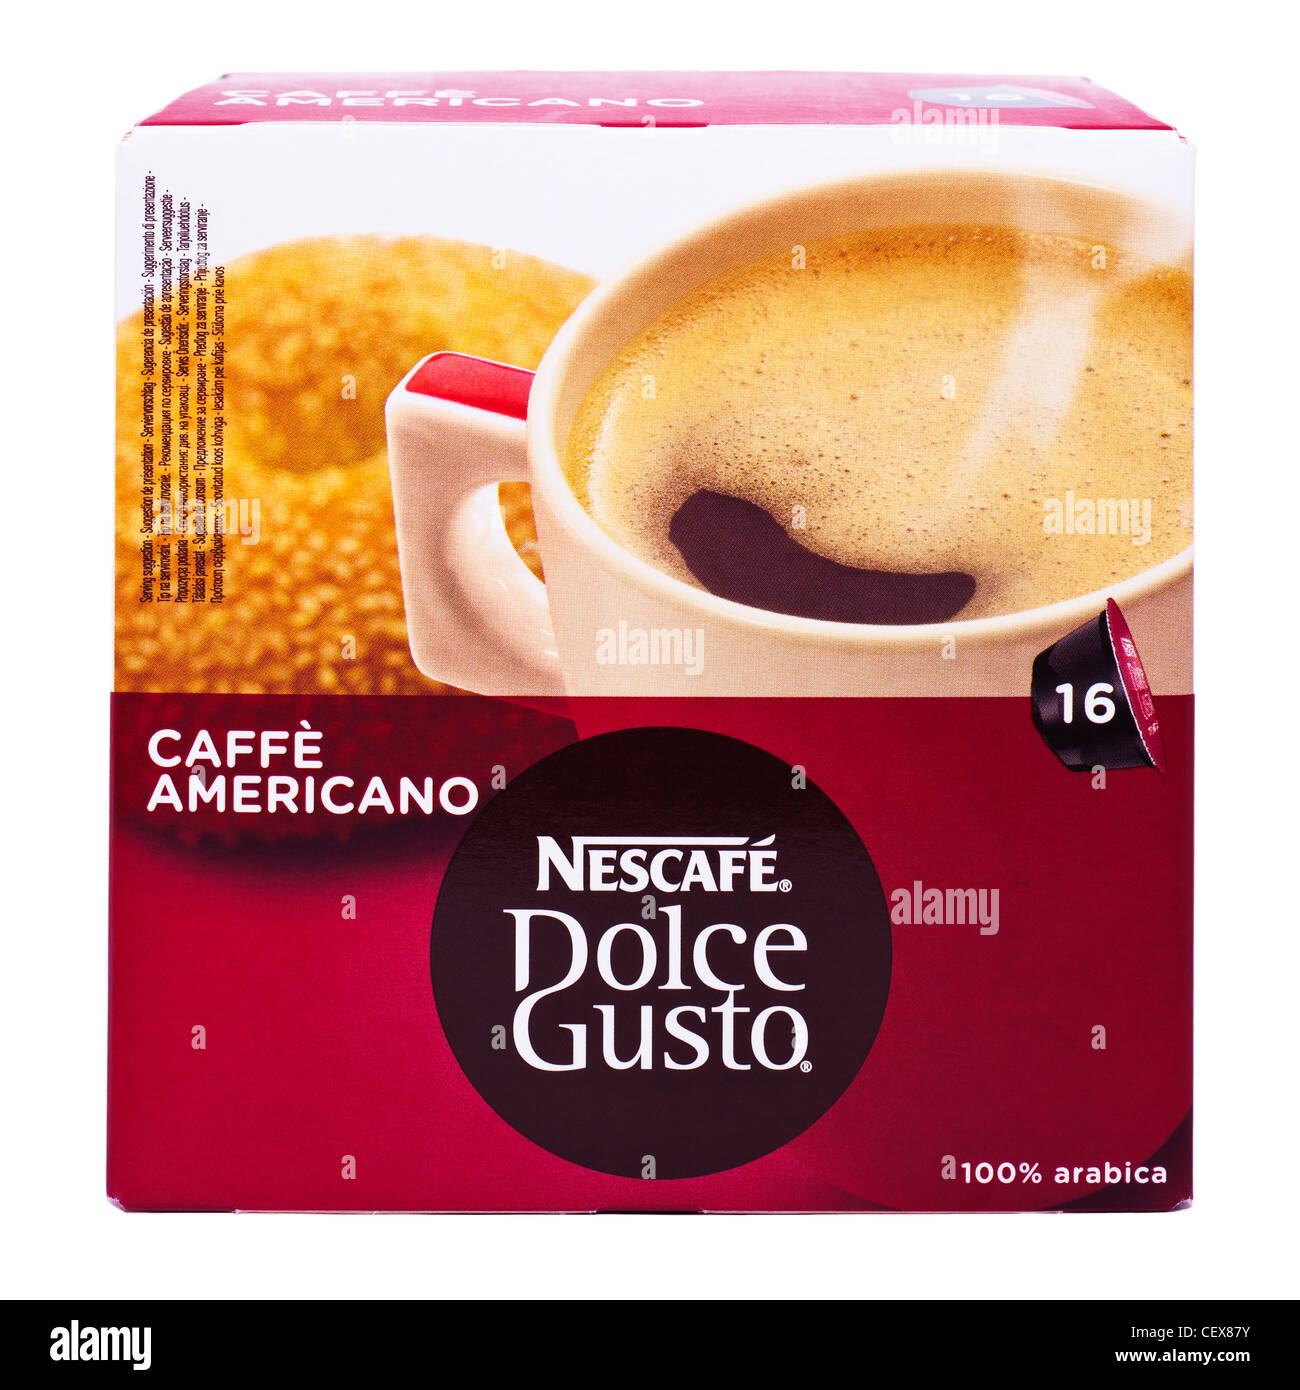 A box of Nescafe Dolce Gusto cafe americano coffee pods for a drinks machine on a white background - Stock Image